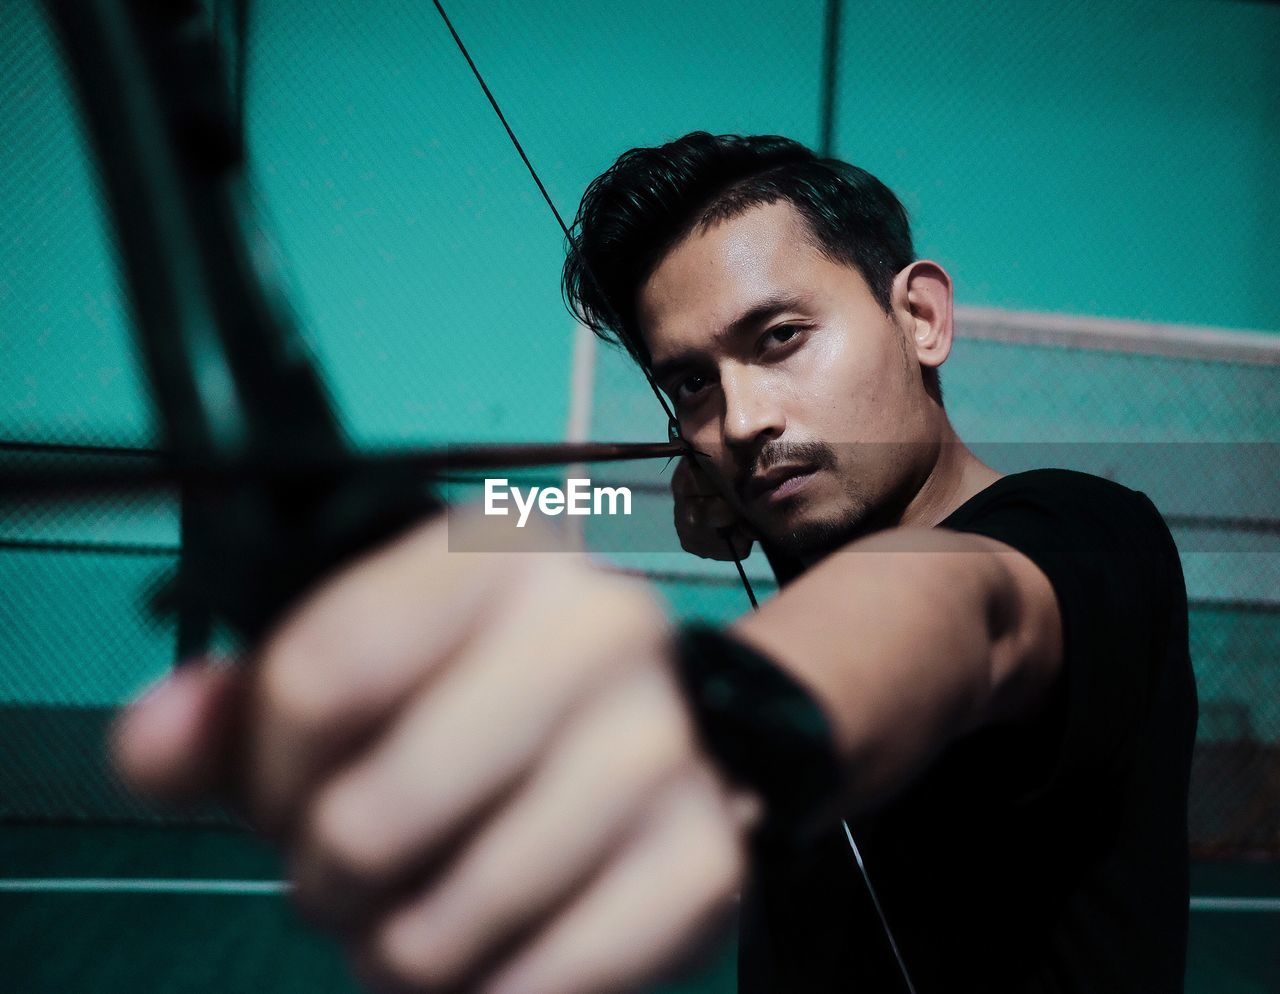 one person, young adult, young men, sport, strength, lifestyles, portrait, real people, exercising, sports training, looking at camera, healthy lifestyle, determination, leisure activity, sports clothing, holding, selective focus, headshot, punching